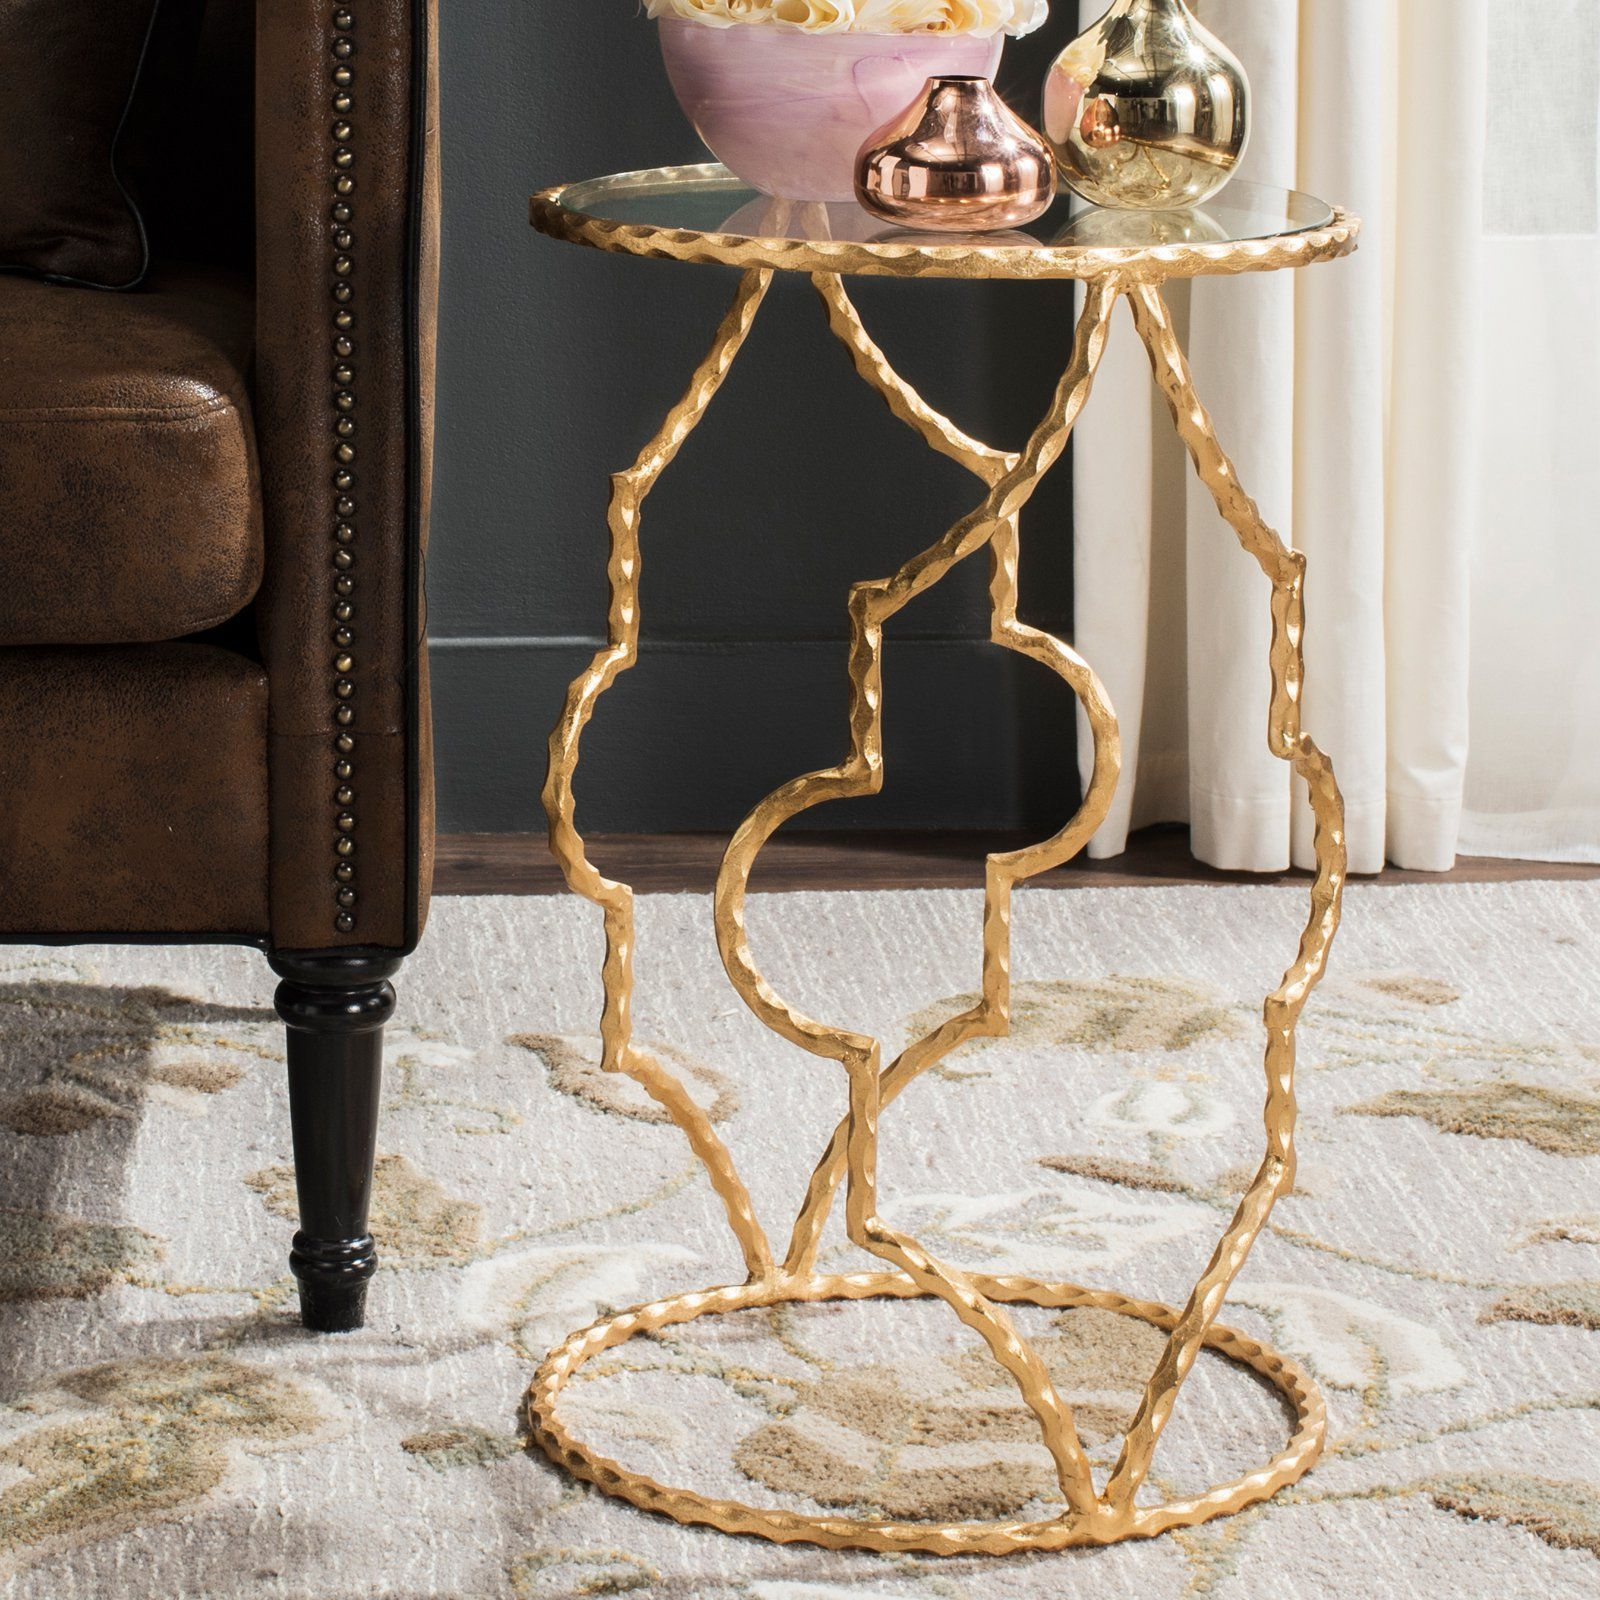 Safavieh Ira Round Gold Leaf End Table | from hayneedle.com